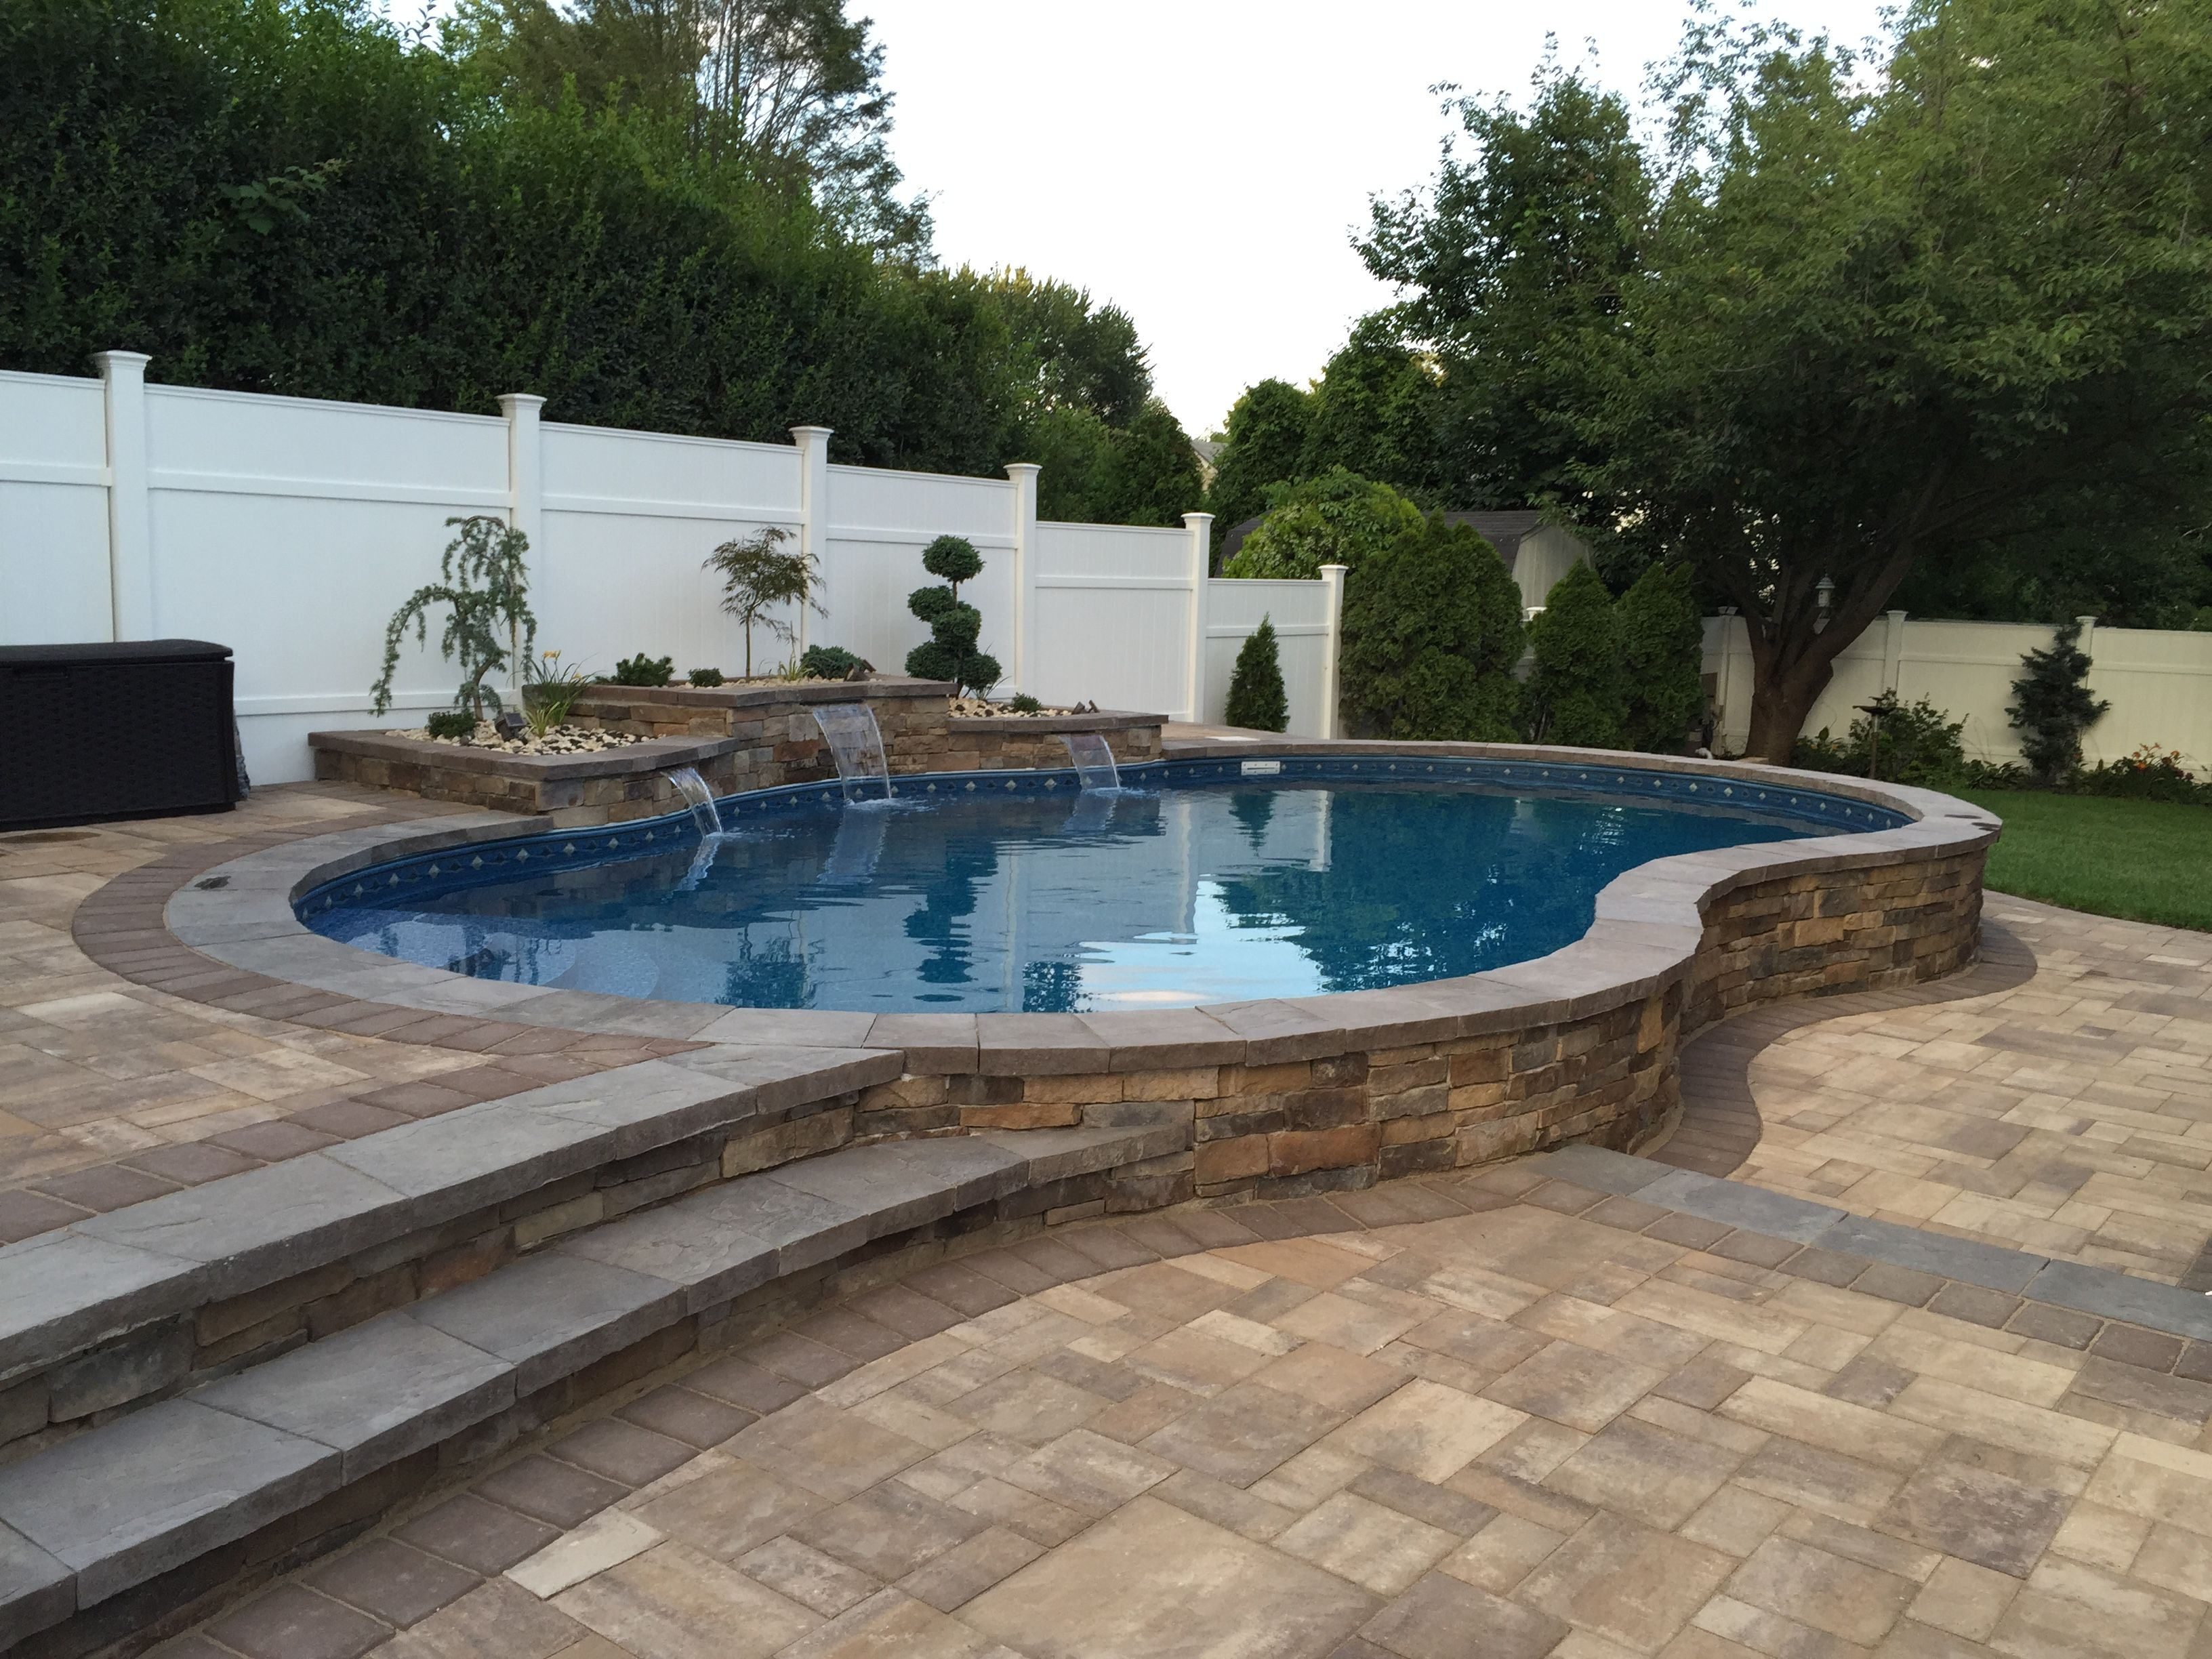 Semi Inground Swimming Pool Designs semi inground pool deck ideas Radiant 16x27 Semi Inground Freeform With Radiant Inside Step And Water Feature